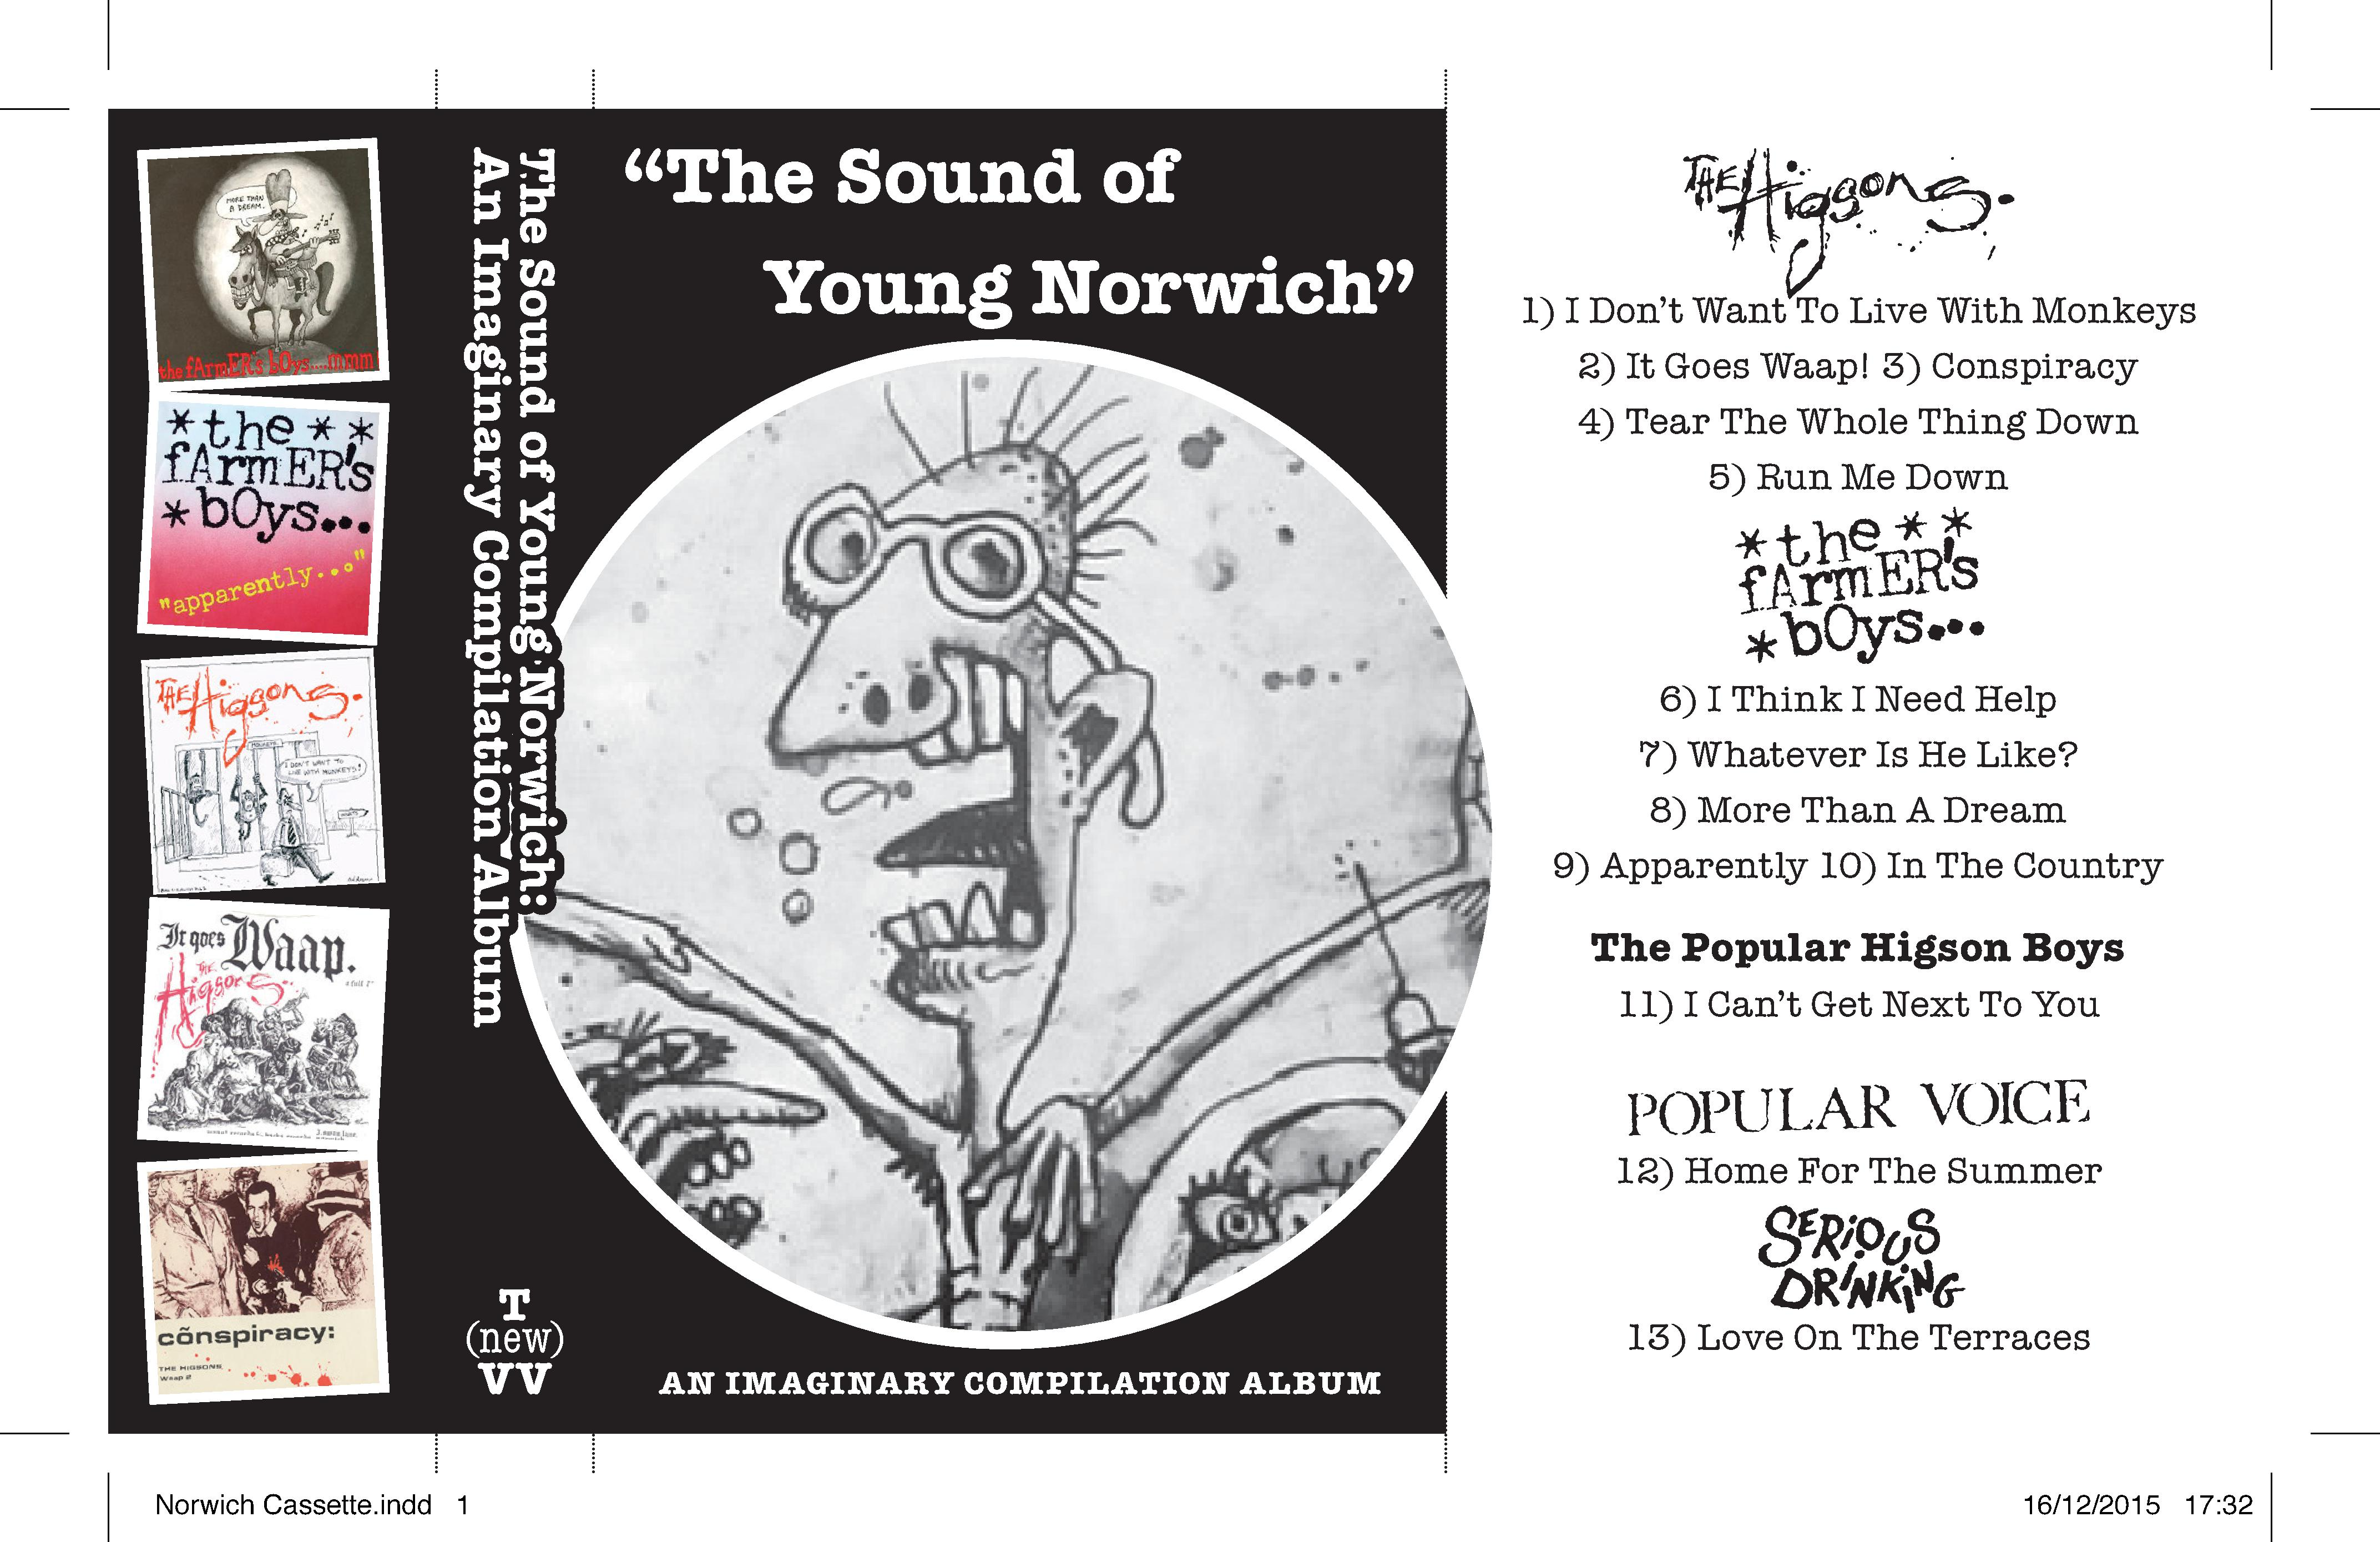 LAURA@NUBILES  45 AN IMAGINARY COMPILATION ALBUM : #55 : THE SOUND OF YOUNG NORWICH | the (new) vinyl villain